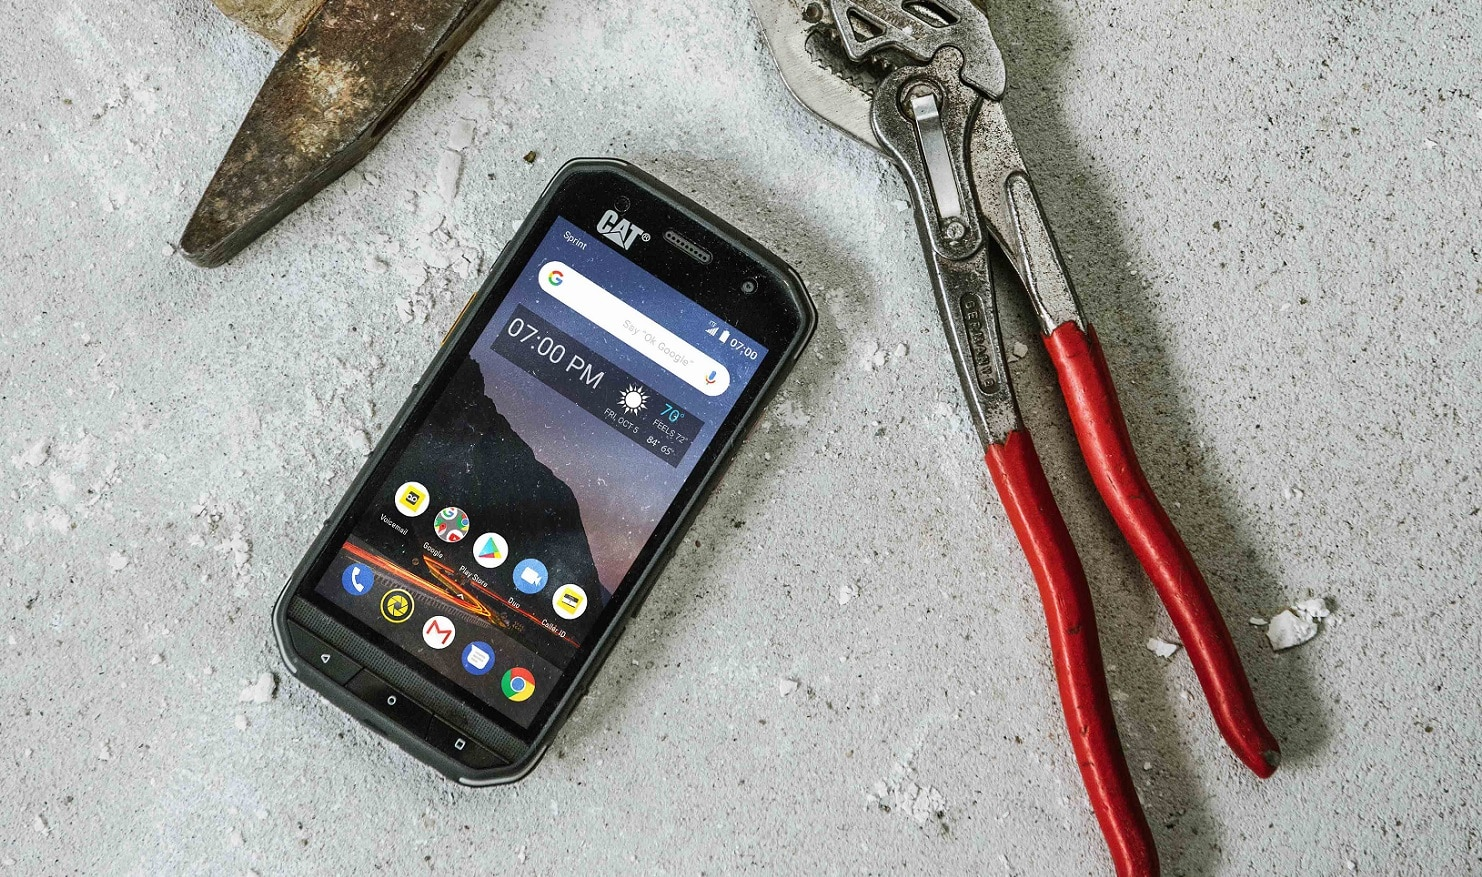 CAT S48c rugged smartphone lands with a splash on Sprint, Verizon